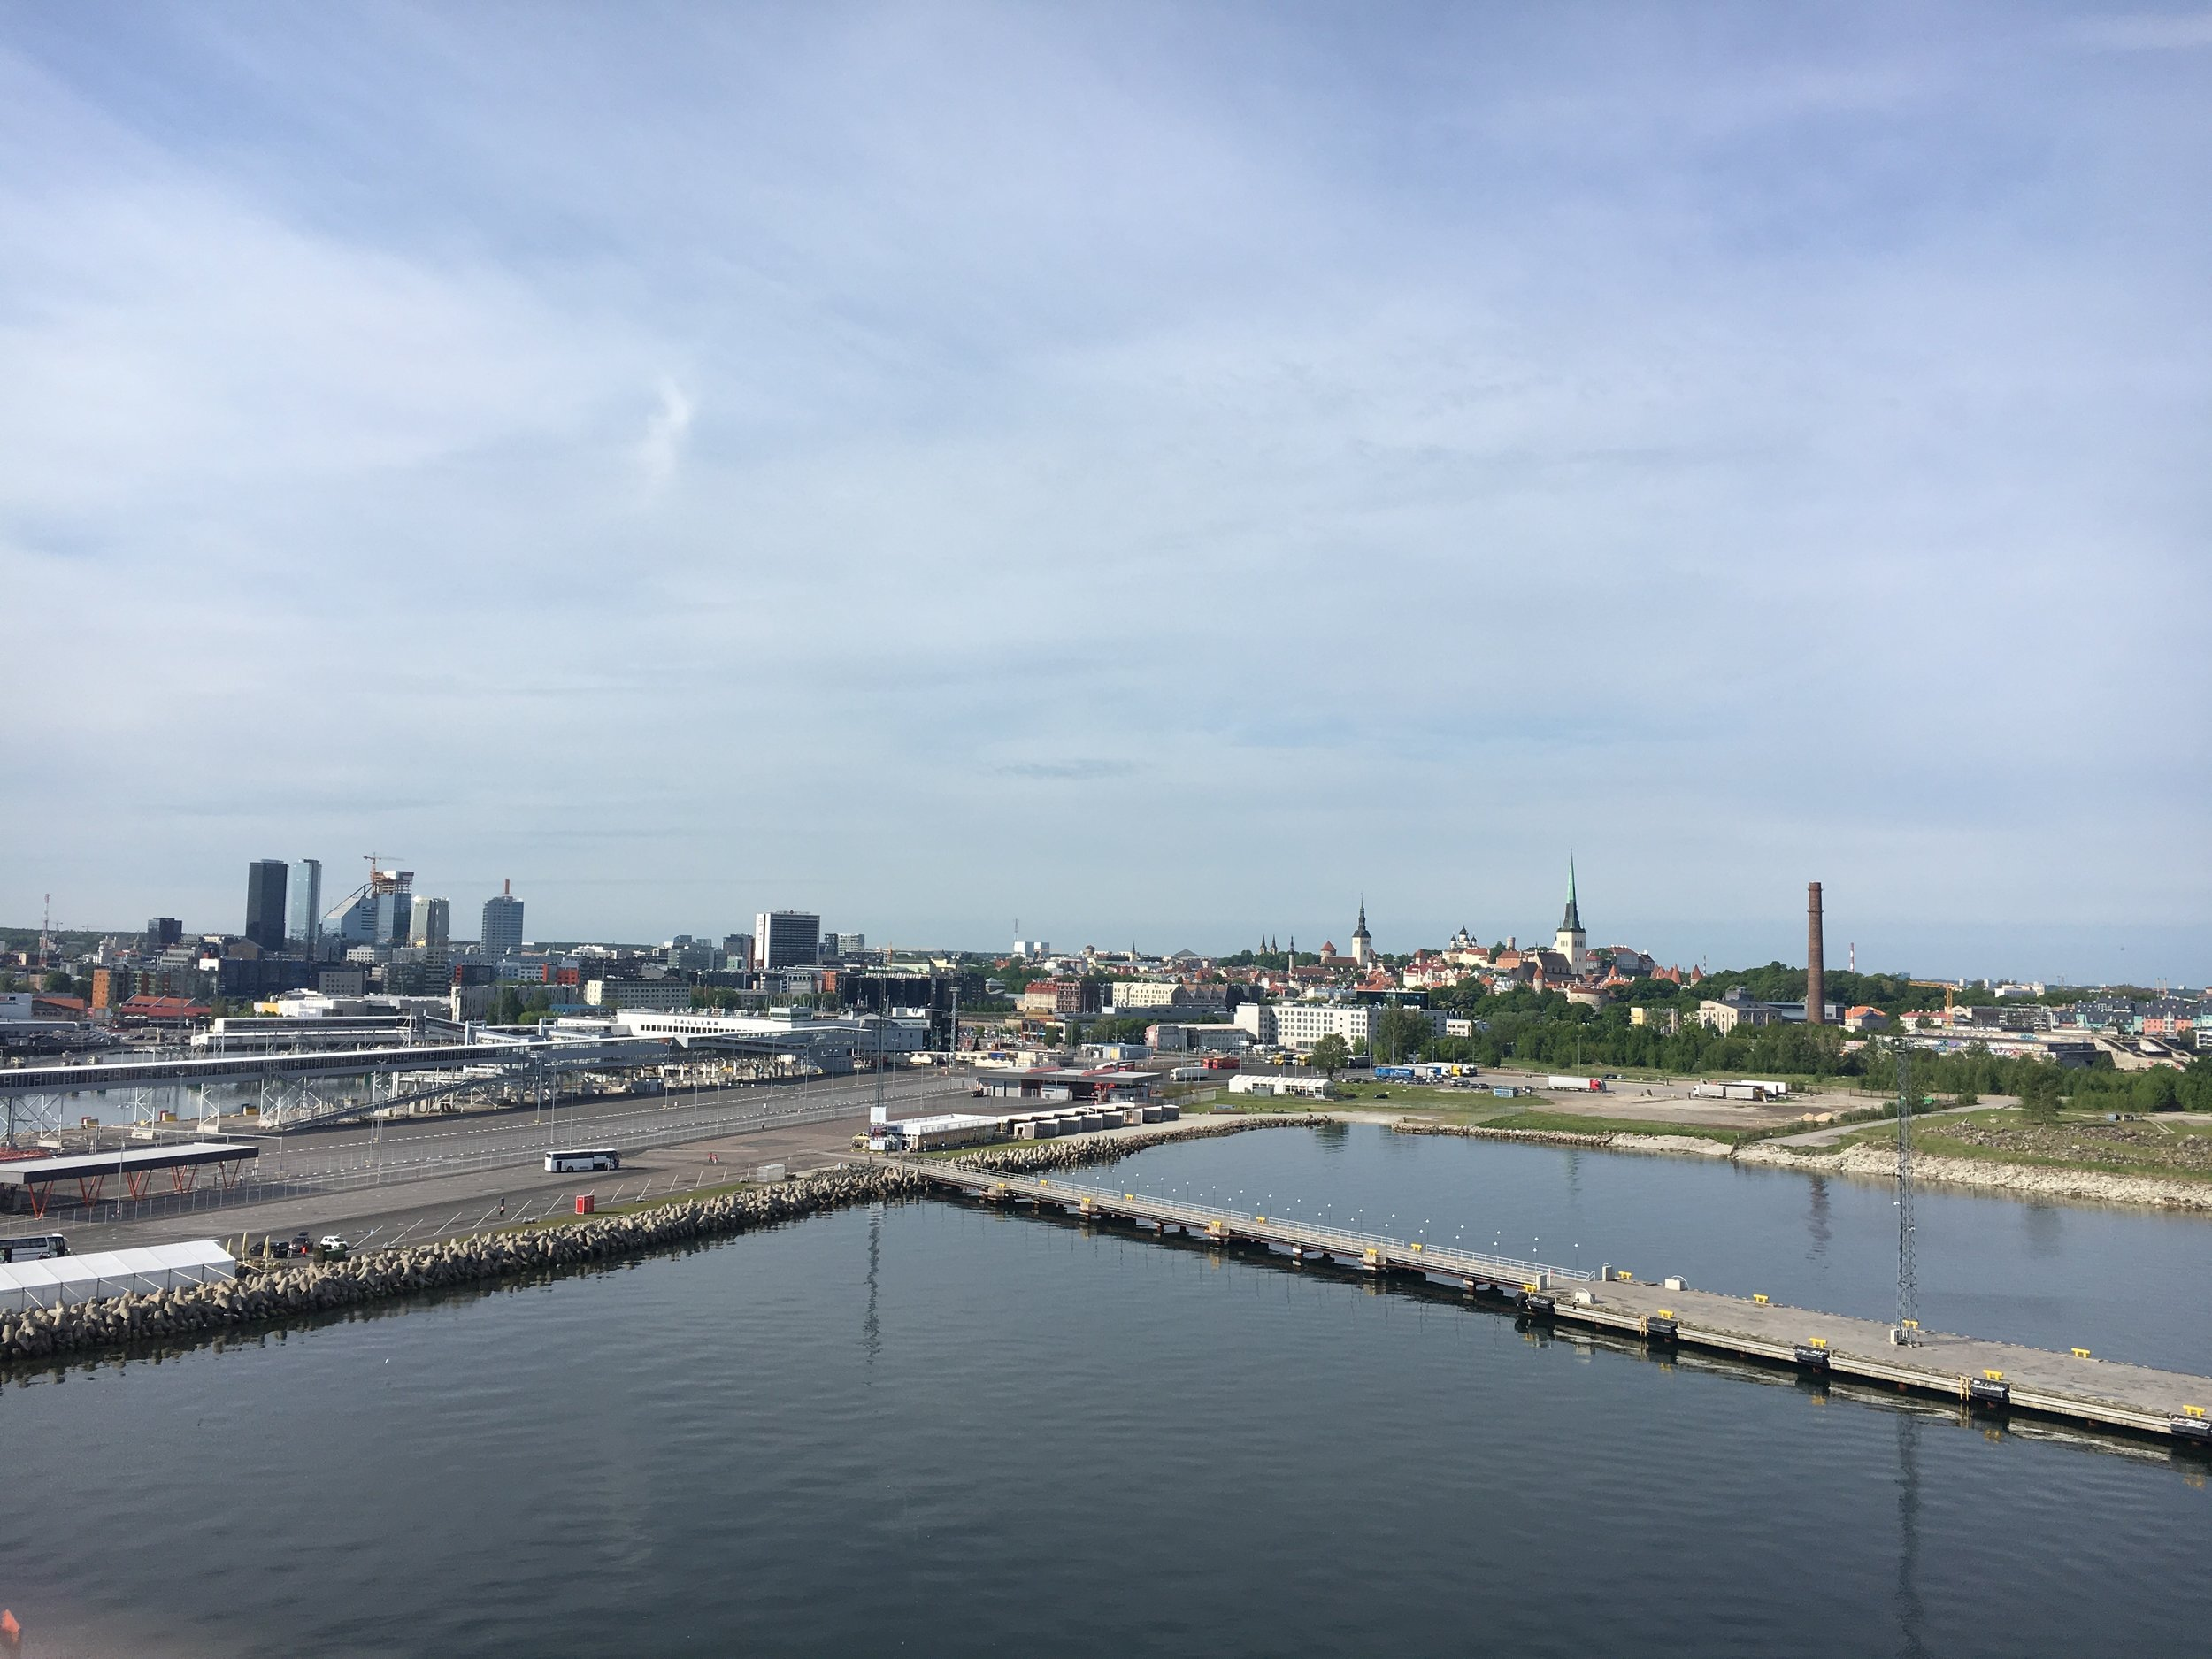 Morning view of the port in Tallinn.